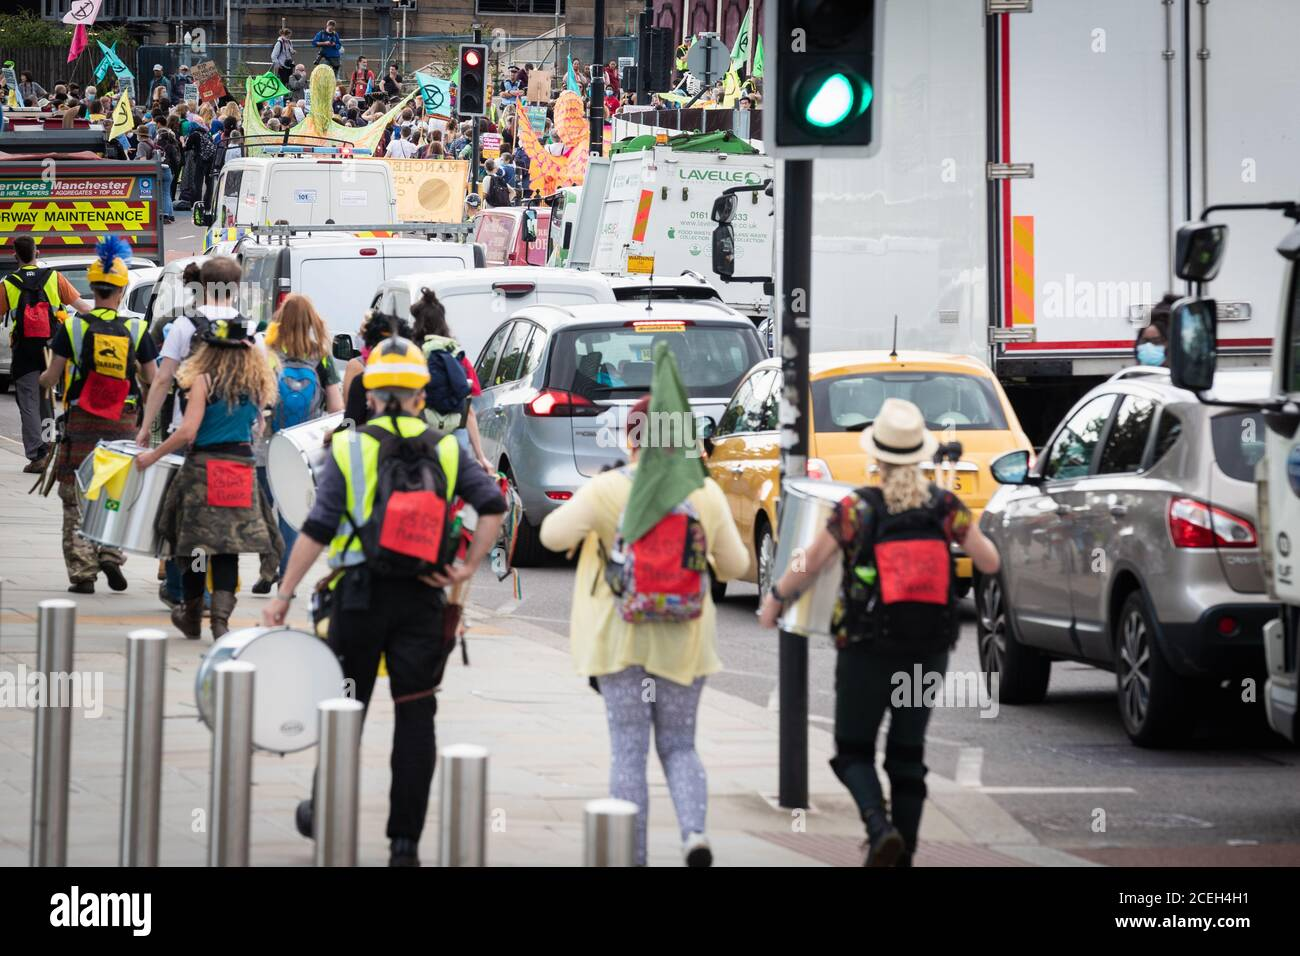 Manchester, UK. 01st Sep, 2020. Extinction Rebellion march through the city, causing traffic to stop during rush-hour. The Northern Rebellion, which is part of the Extinction Rebellion movement, take to the Streets for two weeks of action under the banner of ÔWe Want To LiveÕ. Credit: Andy Barton/Alamy Live News Stock Photo